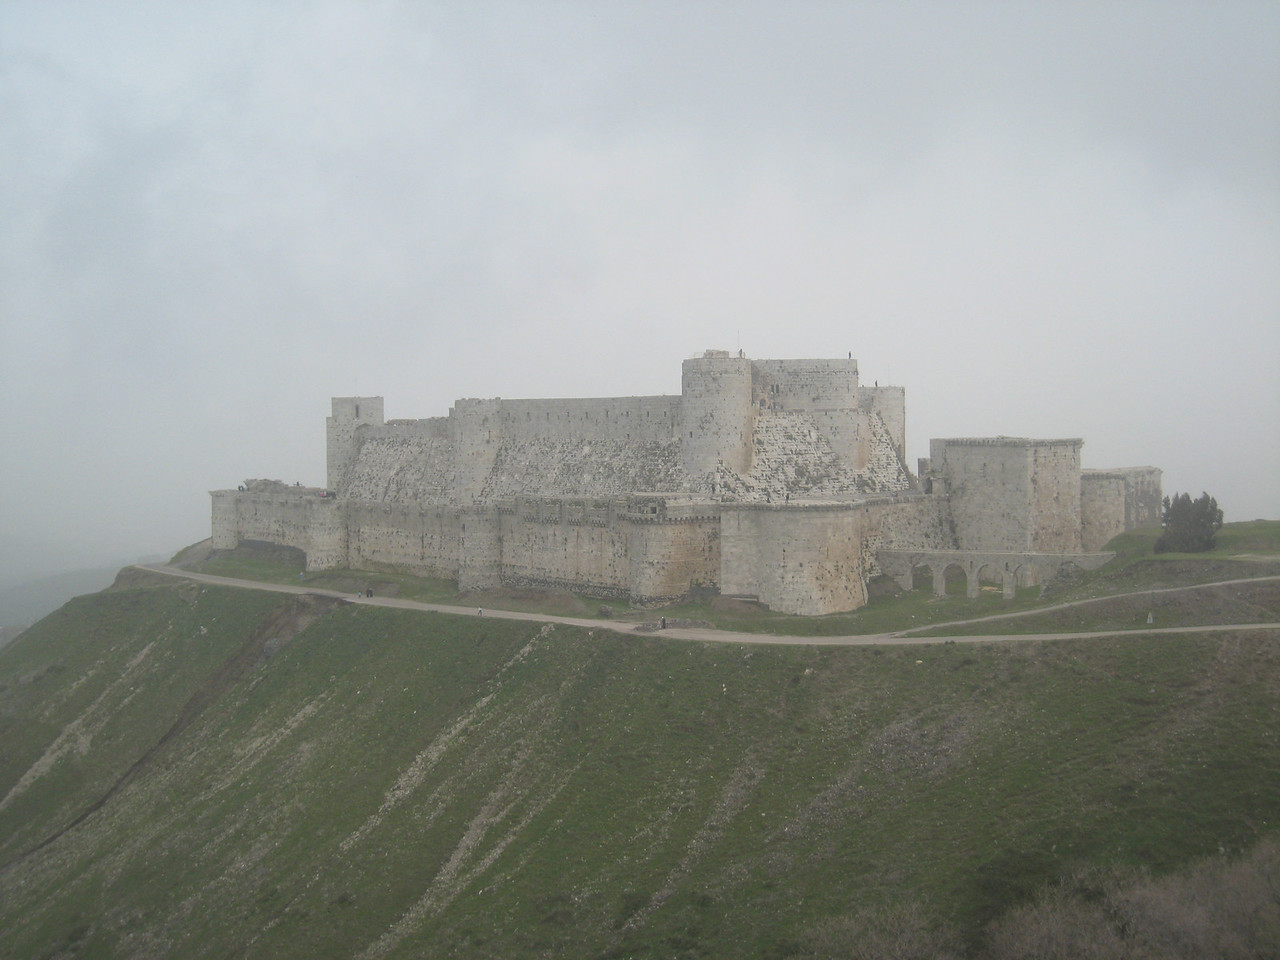 Krac de Chevaliers with the aquaduct on the right.